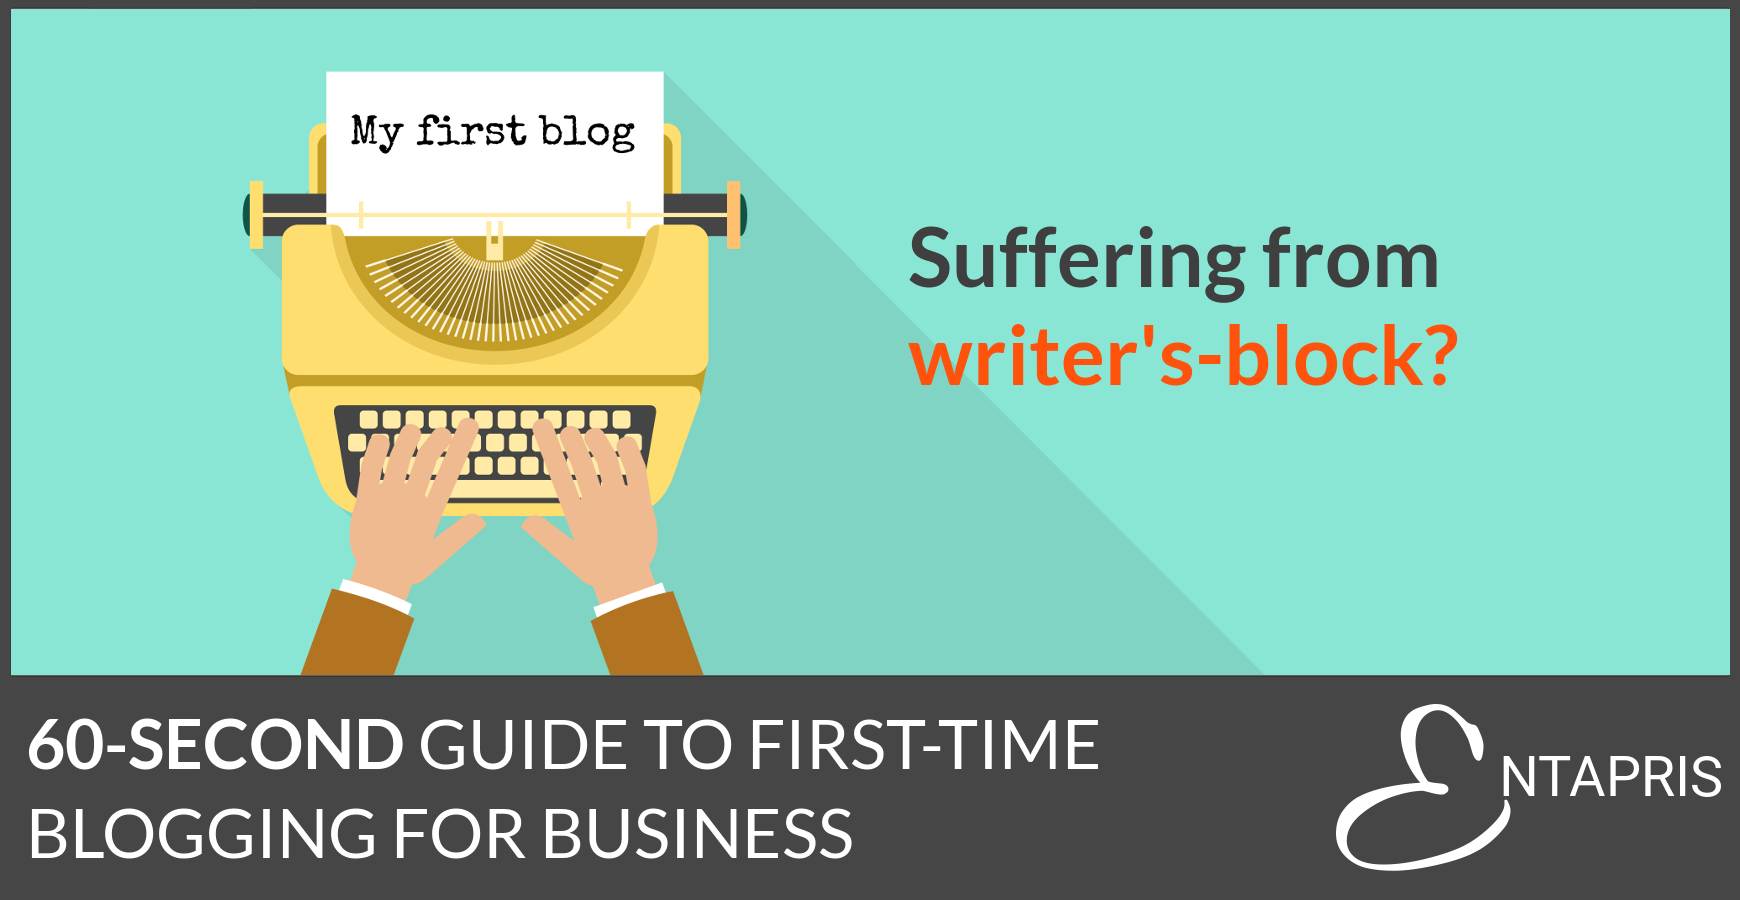 60-Second Guide to First-Time Blogging for Business